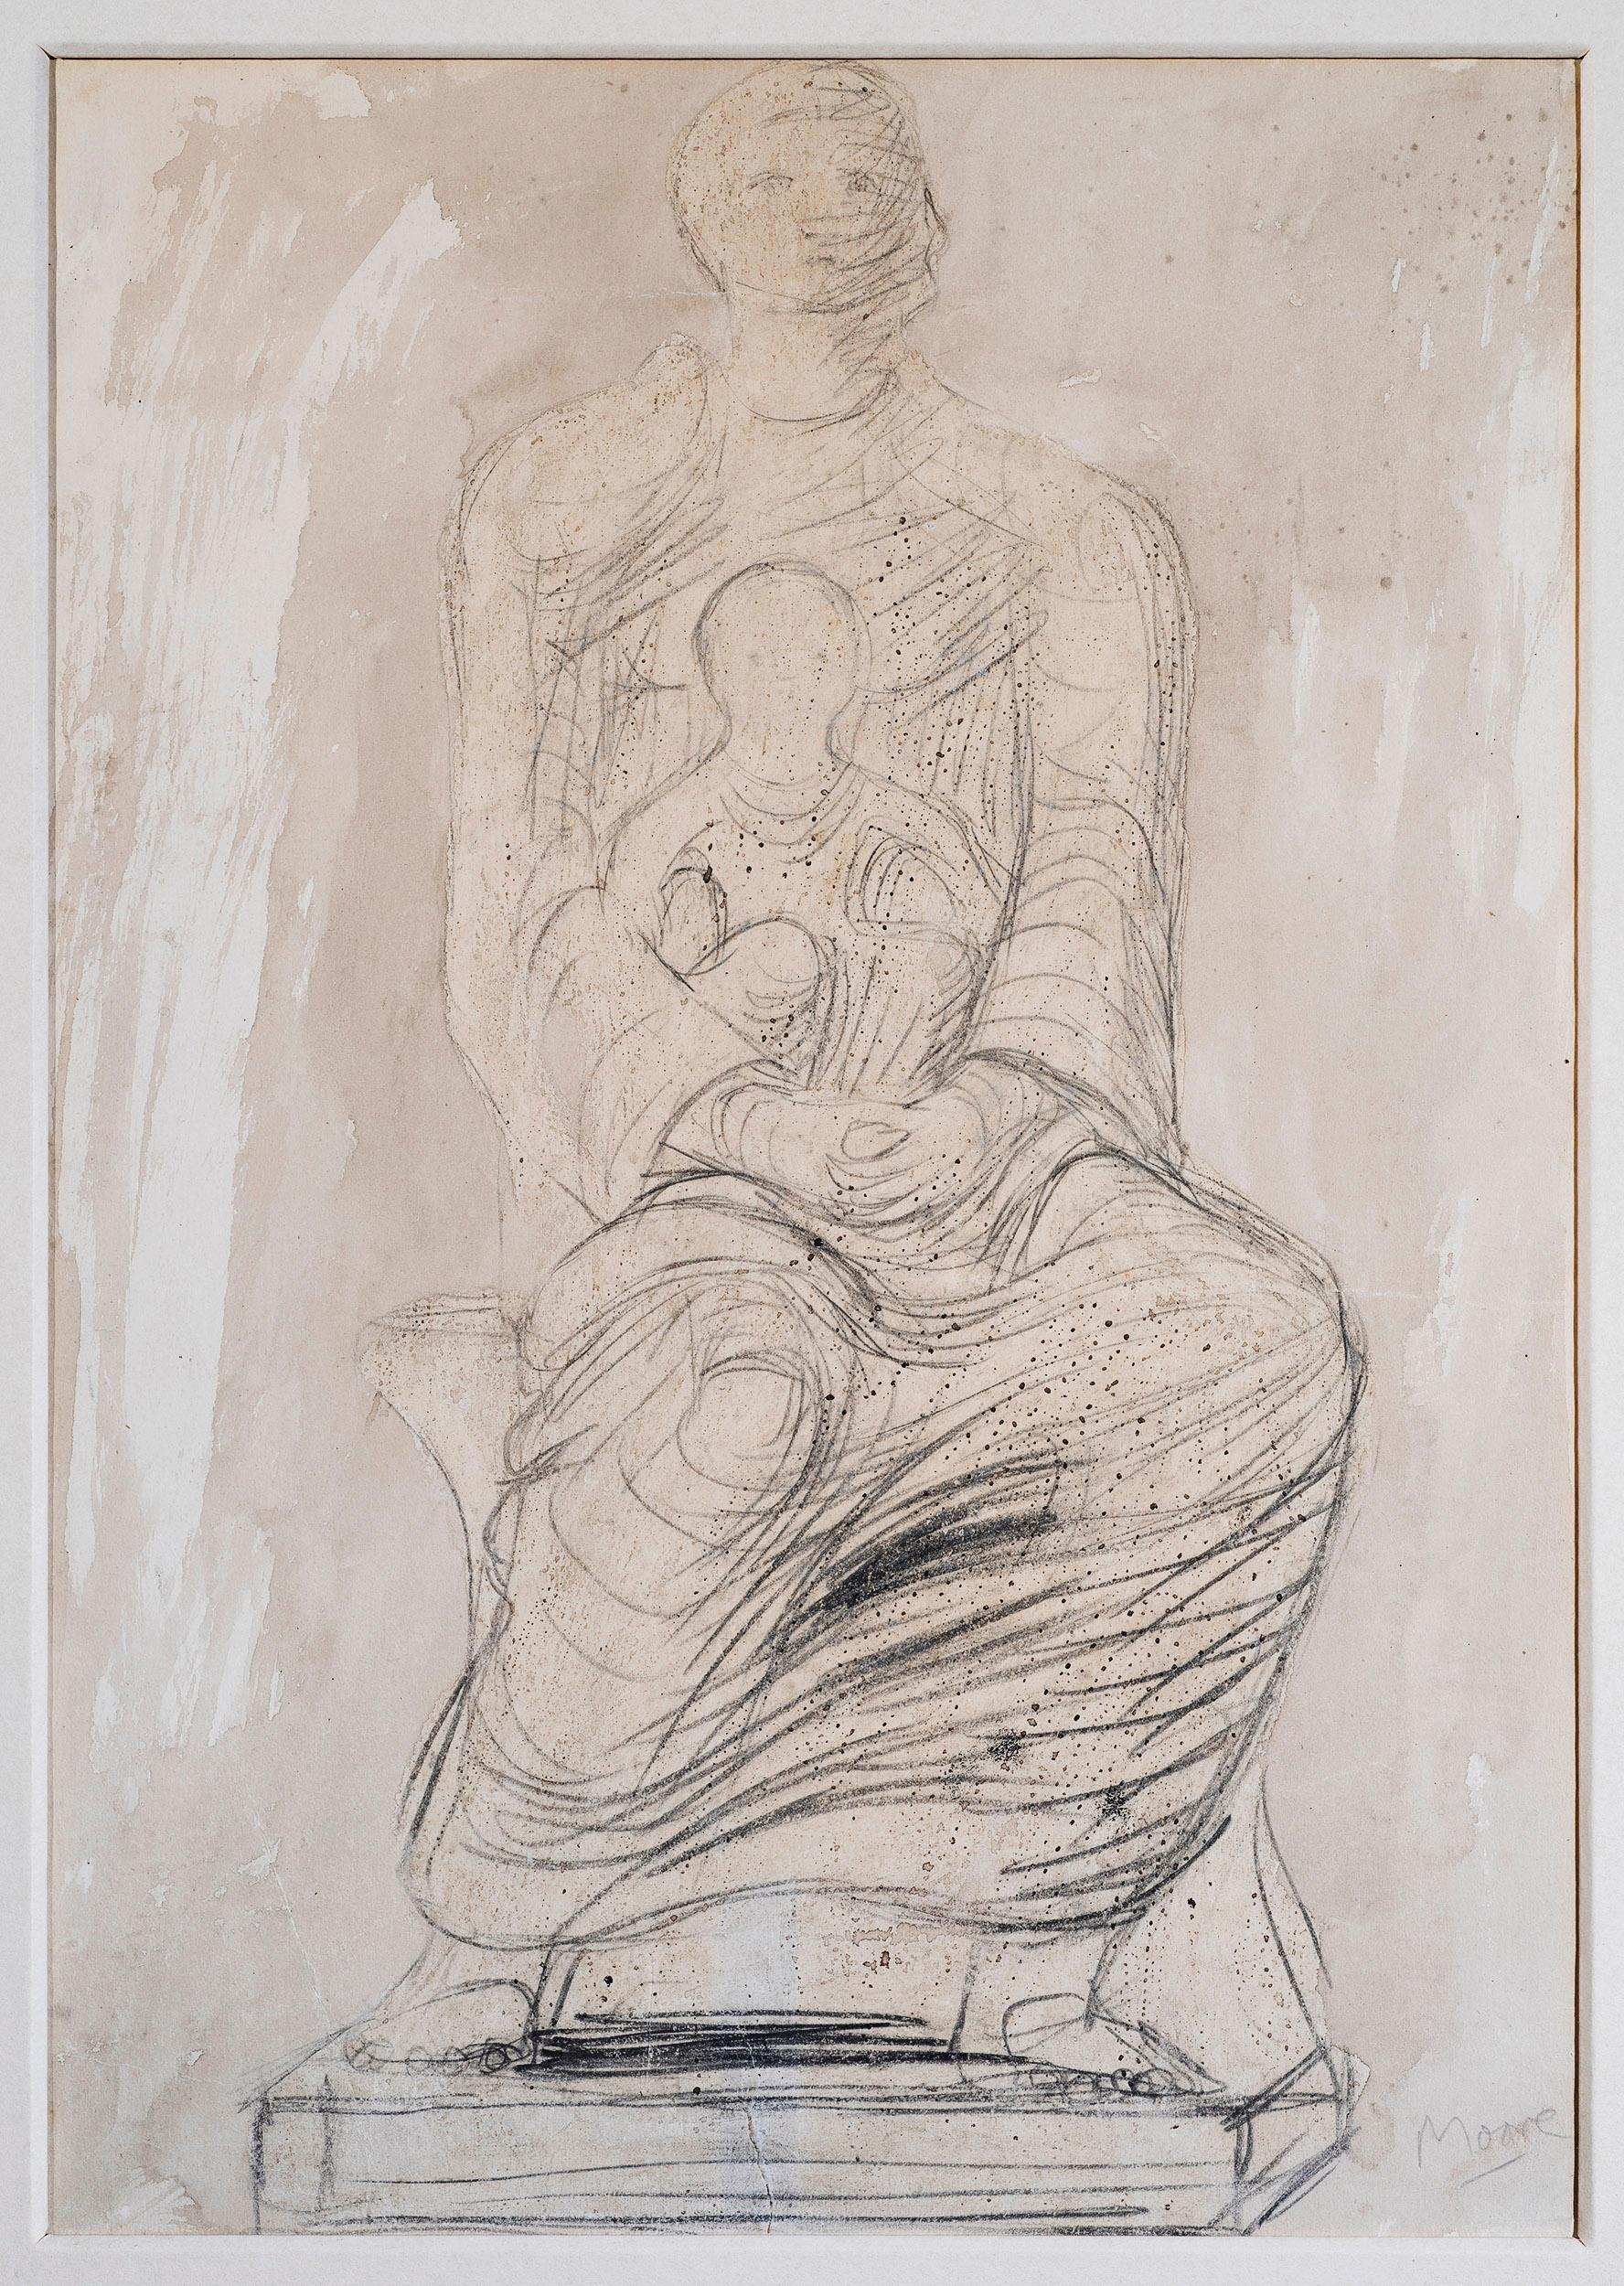 Study of Madonna & Child - 20th Century, Wash & pencil on paper by Henry Moore